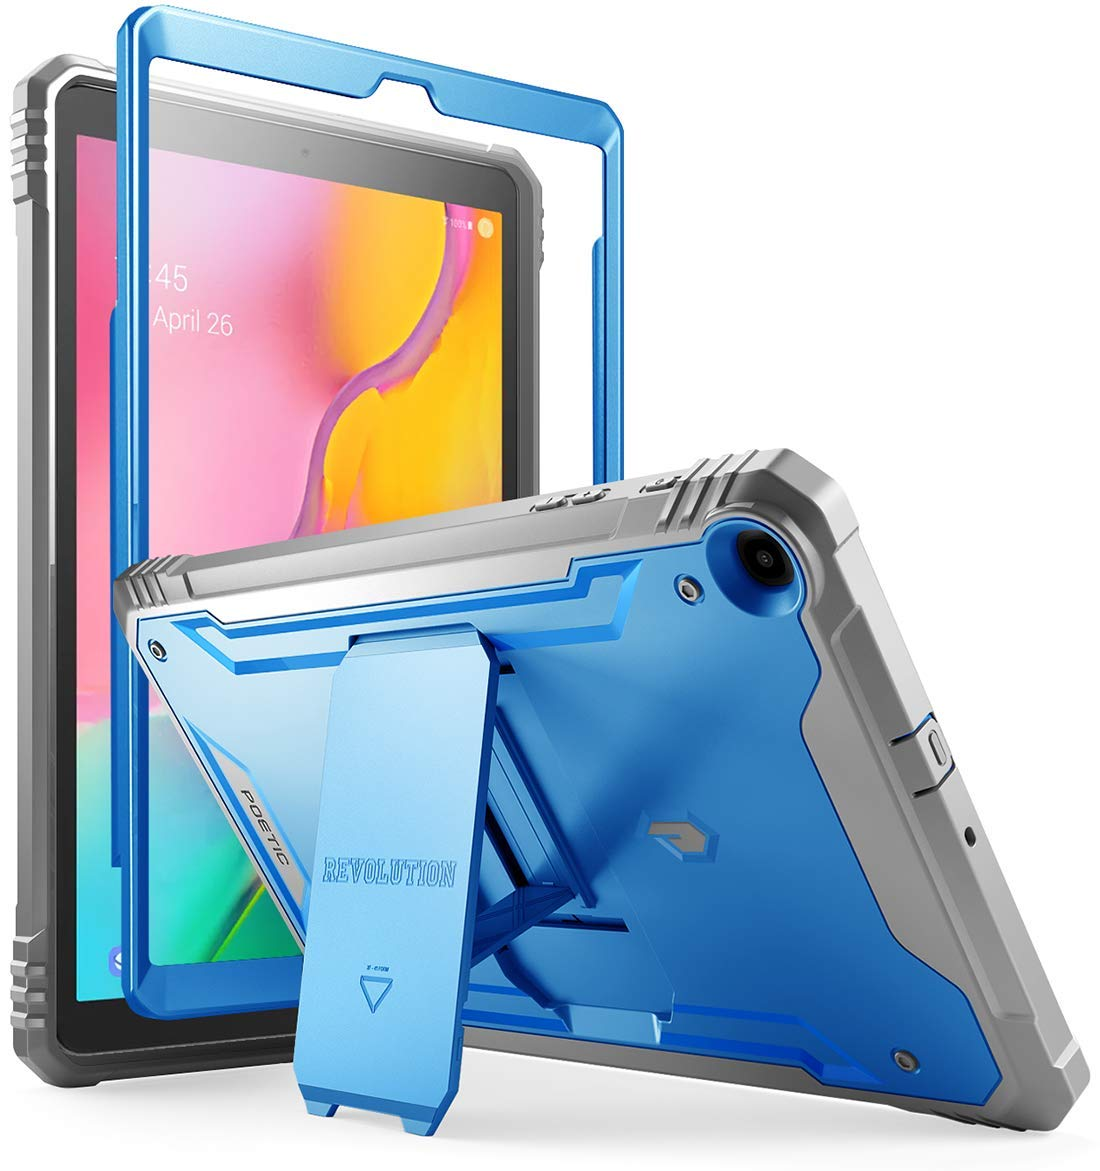 Galaxy Tab A 8.0 NOT FIT 2015 Version 2017 Poetic Revolution Hybrid Heavy Duty Protection Built-in-Screen Protector Kickstand for Samsung Tab A2 S//SM-T385 //T380 //Galaxy Tab A 8.0 2017 Blue Case